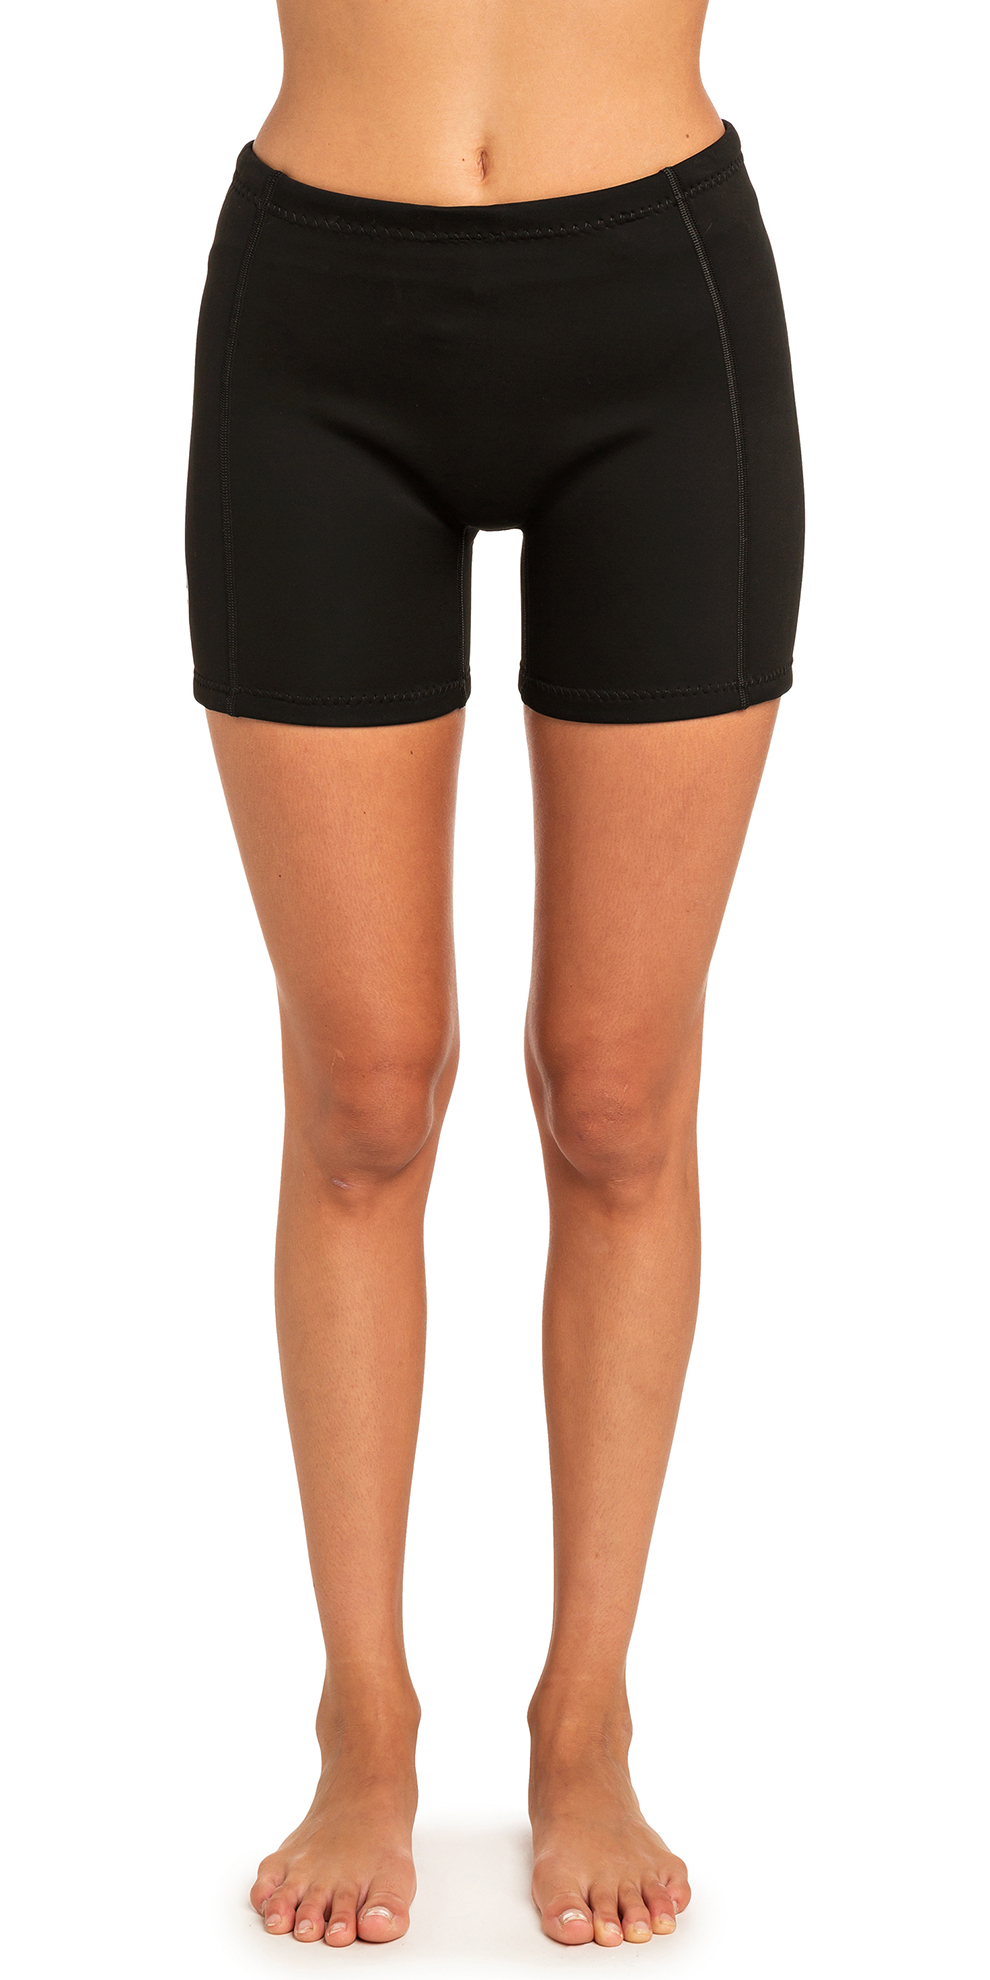 c5e091a976 2019 Rip Curl Womens 1mm Dawn Patrol Neoprene Shorts Black Wsh8ew - Wetsuit  Shorts - Rash